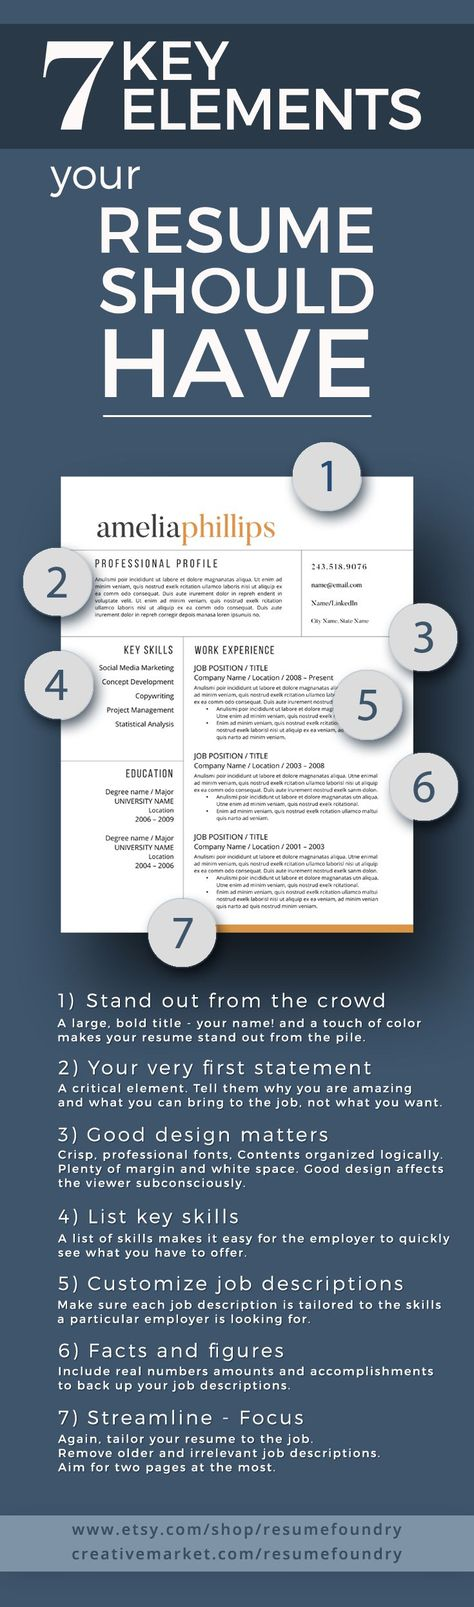 How To Make Your Resume Stand Out Magnificent Winning Resume Writing Top Do's And Don'ts  Resume Writing Life